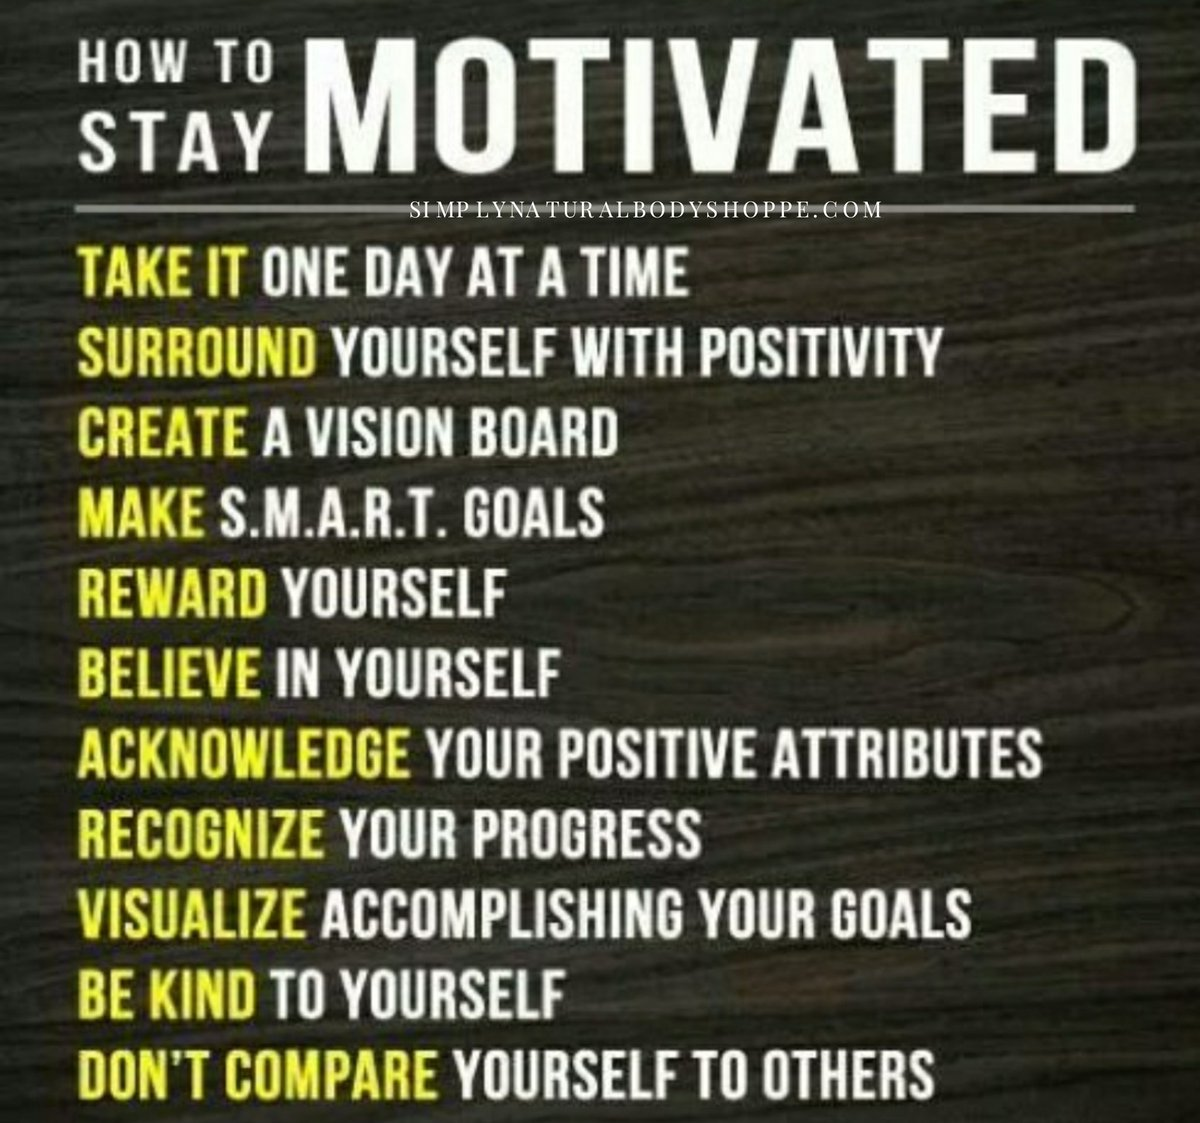 Gotta stay motivated to reach your goal! #motivation #belief<br>http://pic.twitter.com/8JXFpewBud